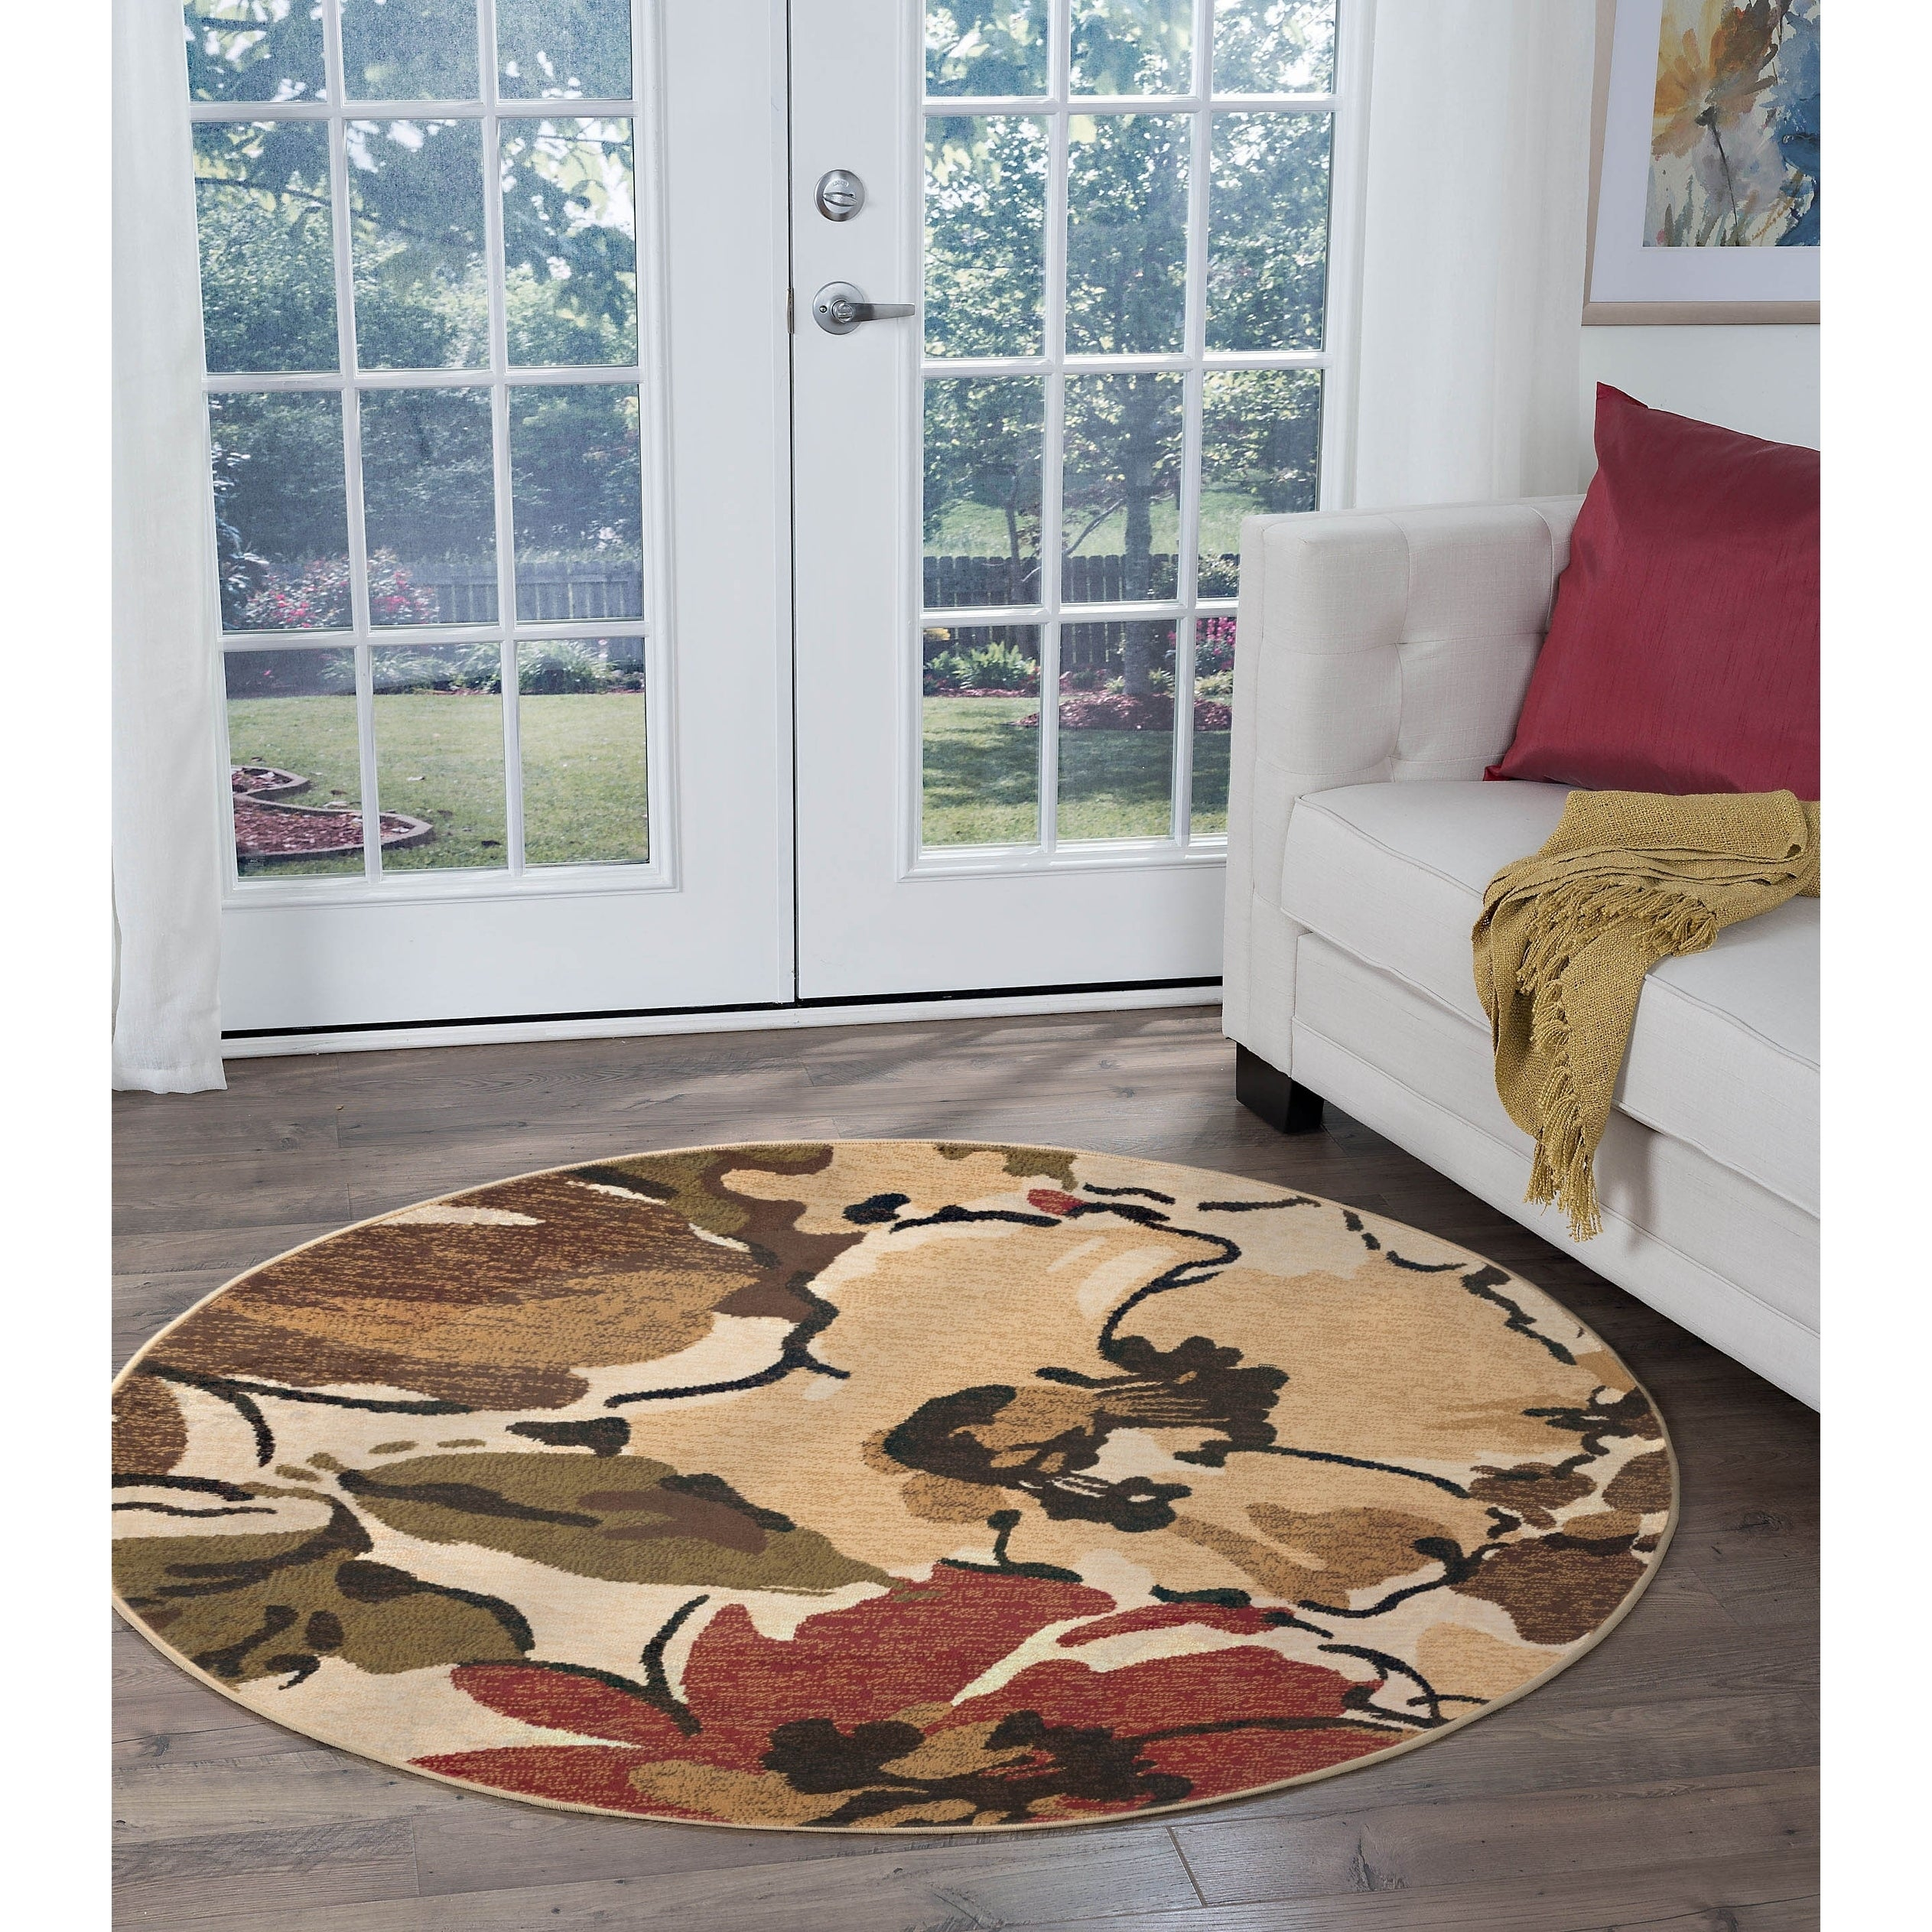 Alise Rugs Lagoon Contemporary Floral Round Area Rug - 7'10 x 7'10 (brown - 7'10 x 7'10)